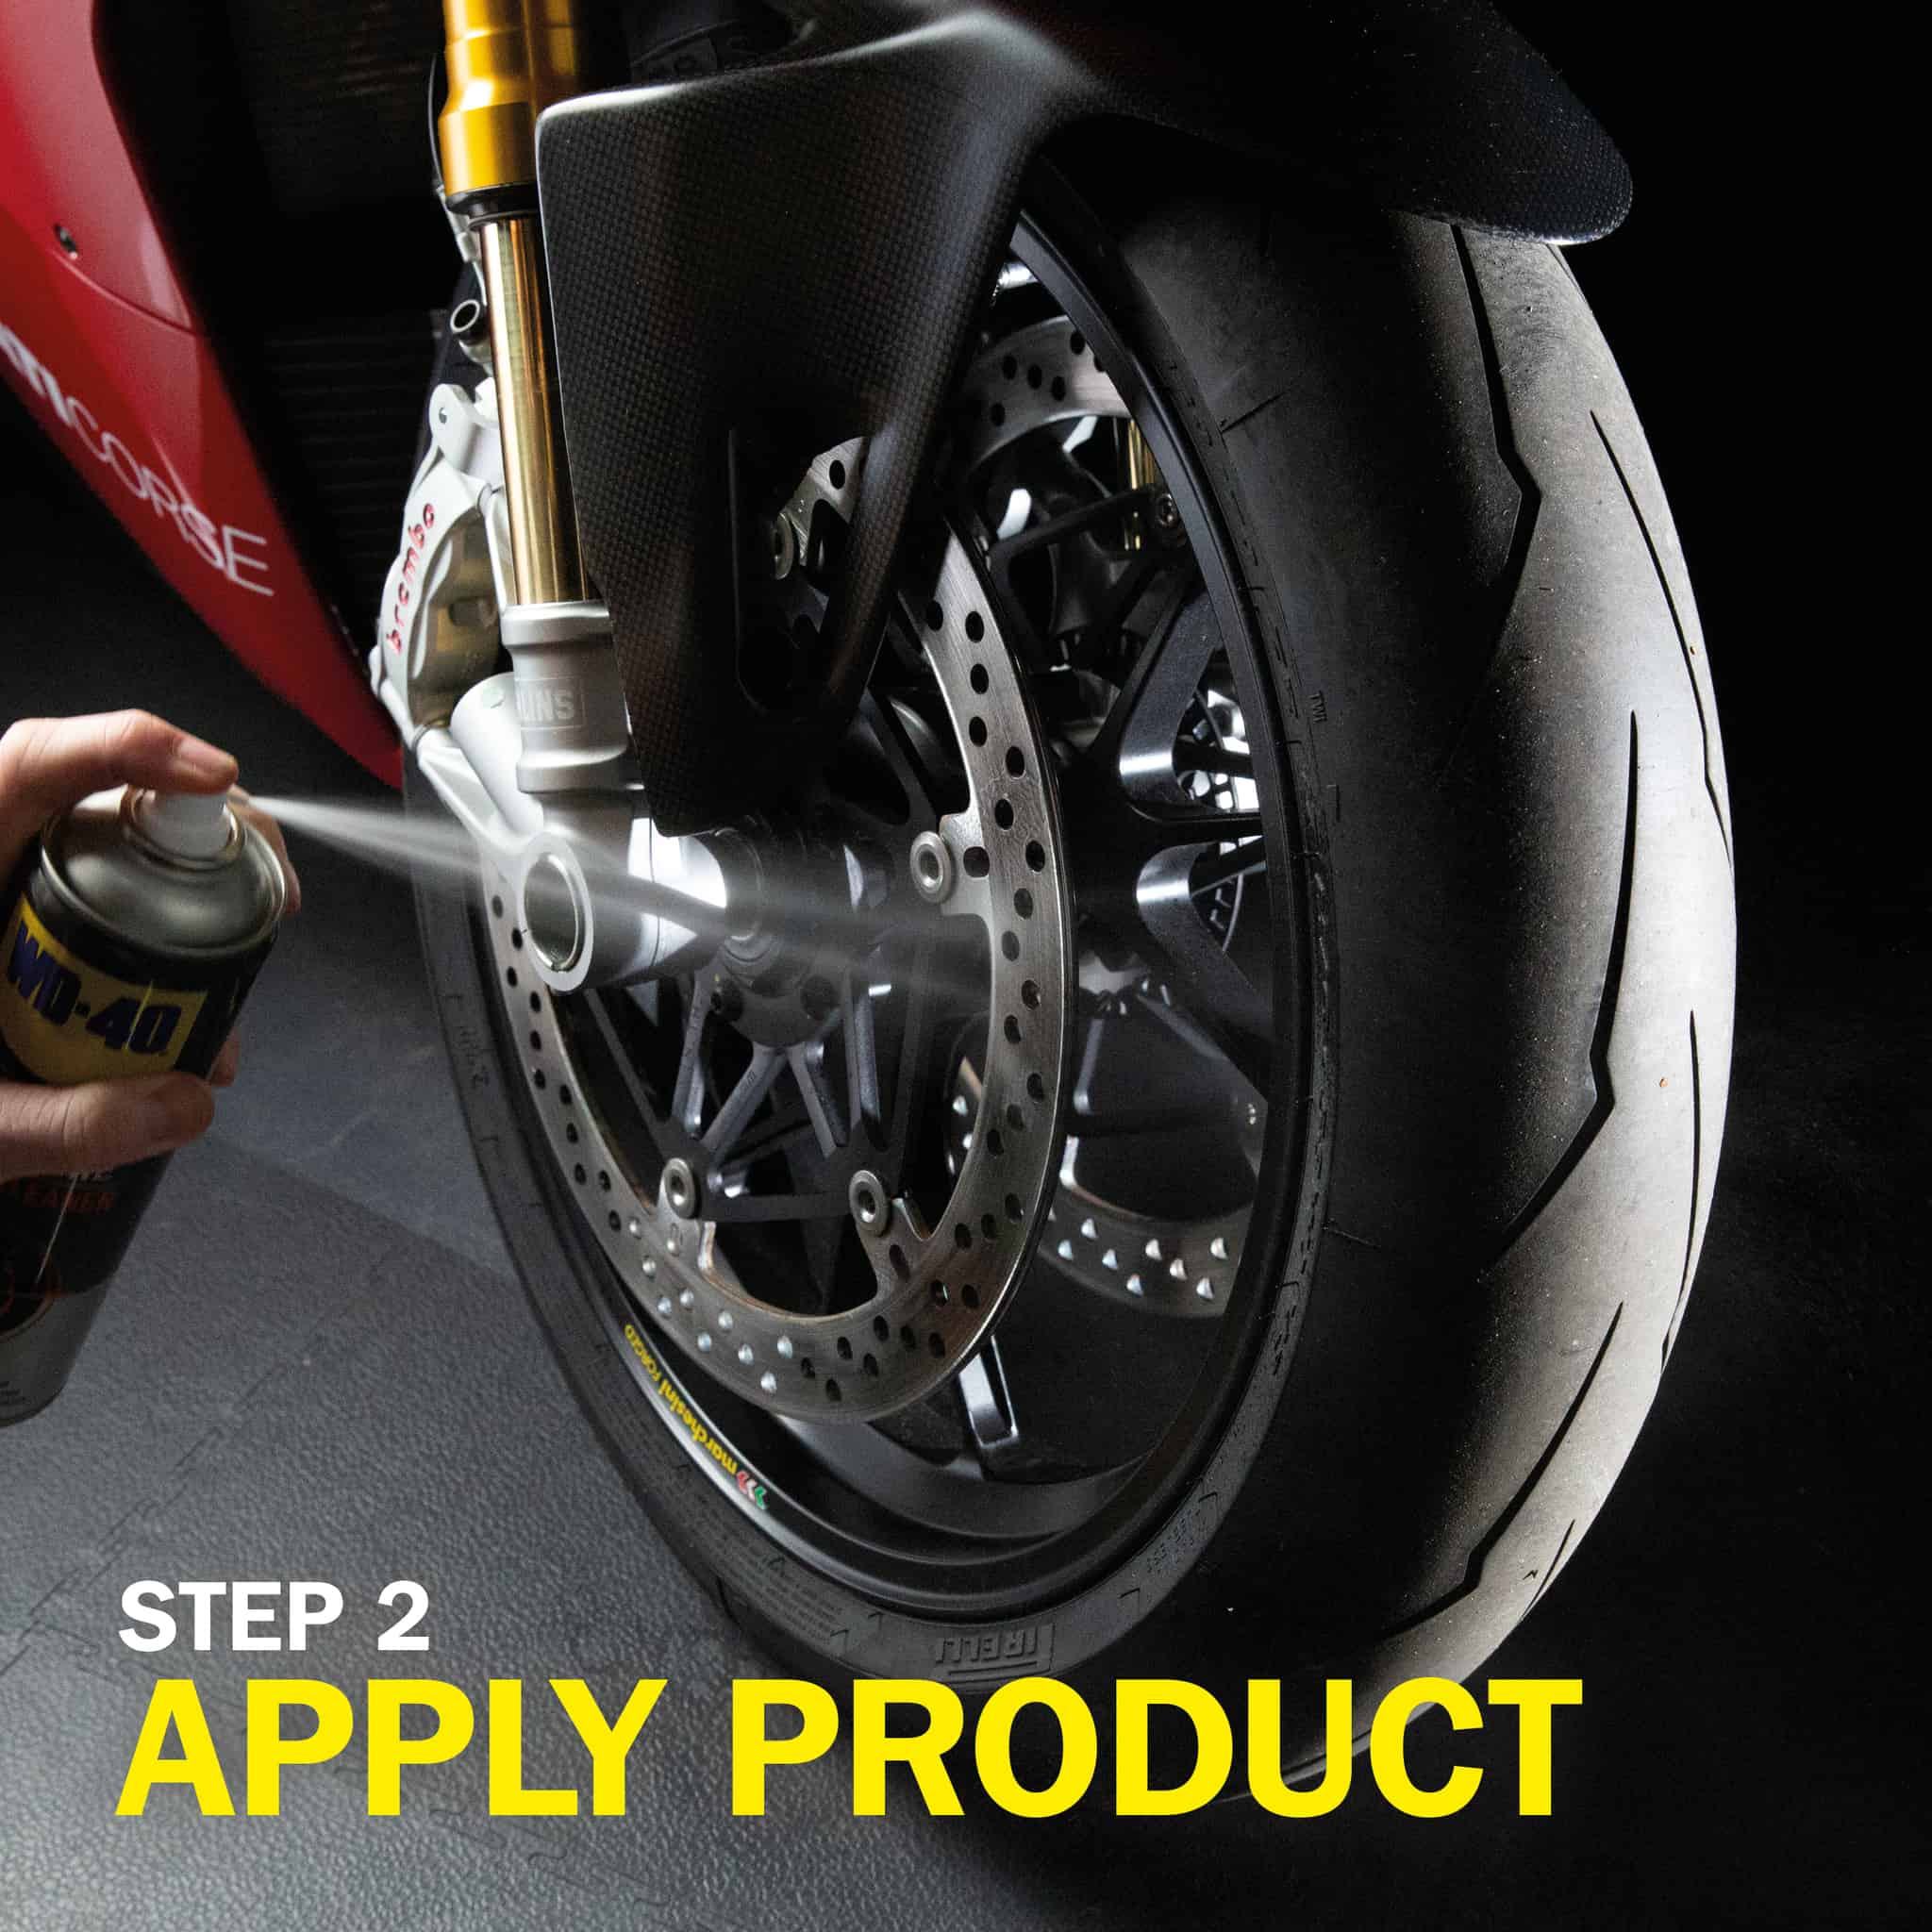 wd40 motorbike brake cleaner how to use part 5